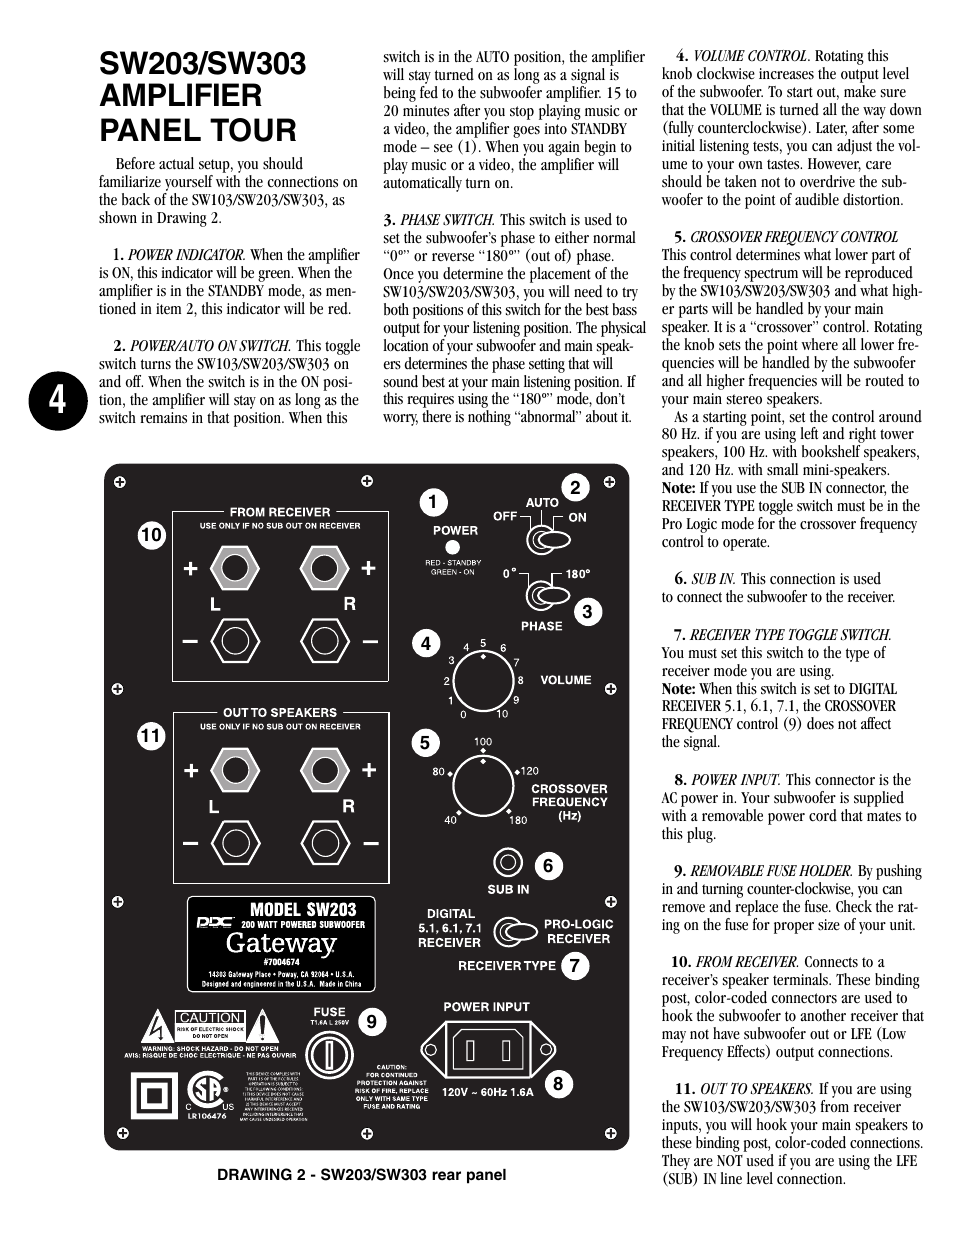 Gateway SW203 User Manual   Page 4 / 8   Also for: SW303, SW103